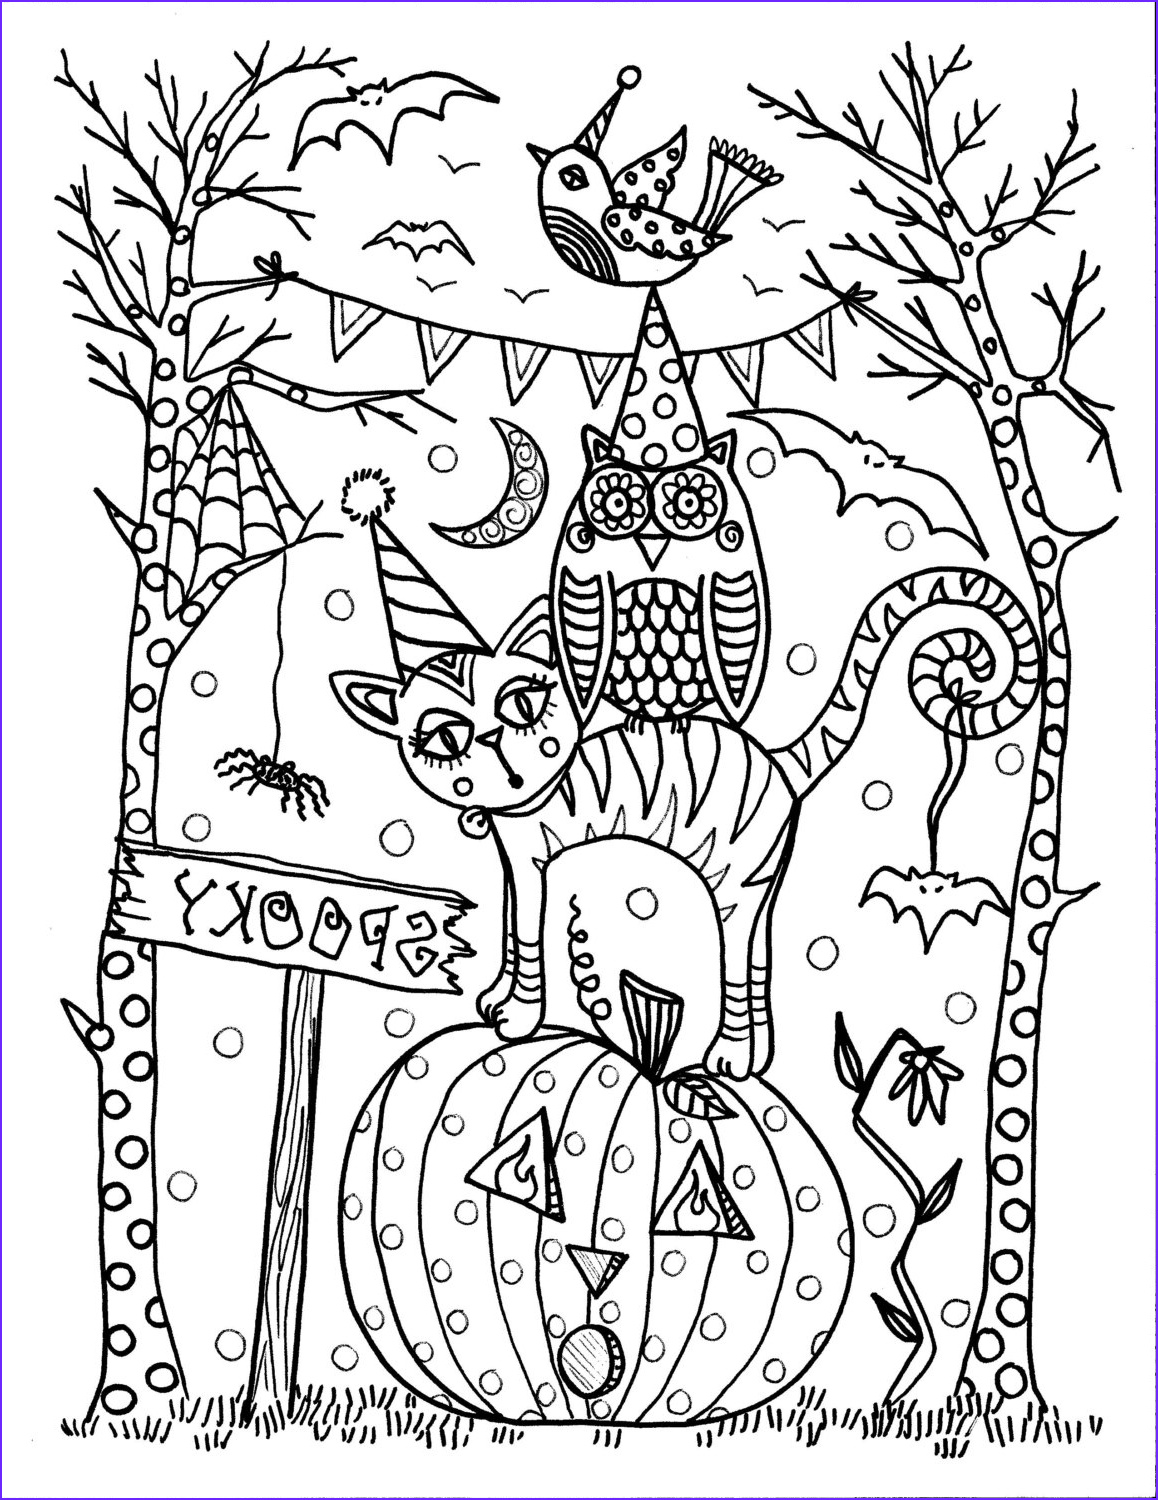 Coloring Page for Adults Halloween Beautiful Images 5 Pages Instant Download Halloween Coloring Pages 5